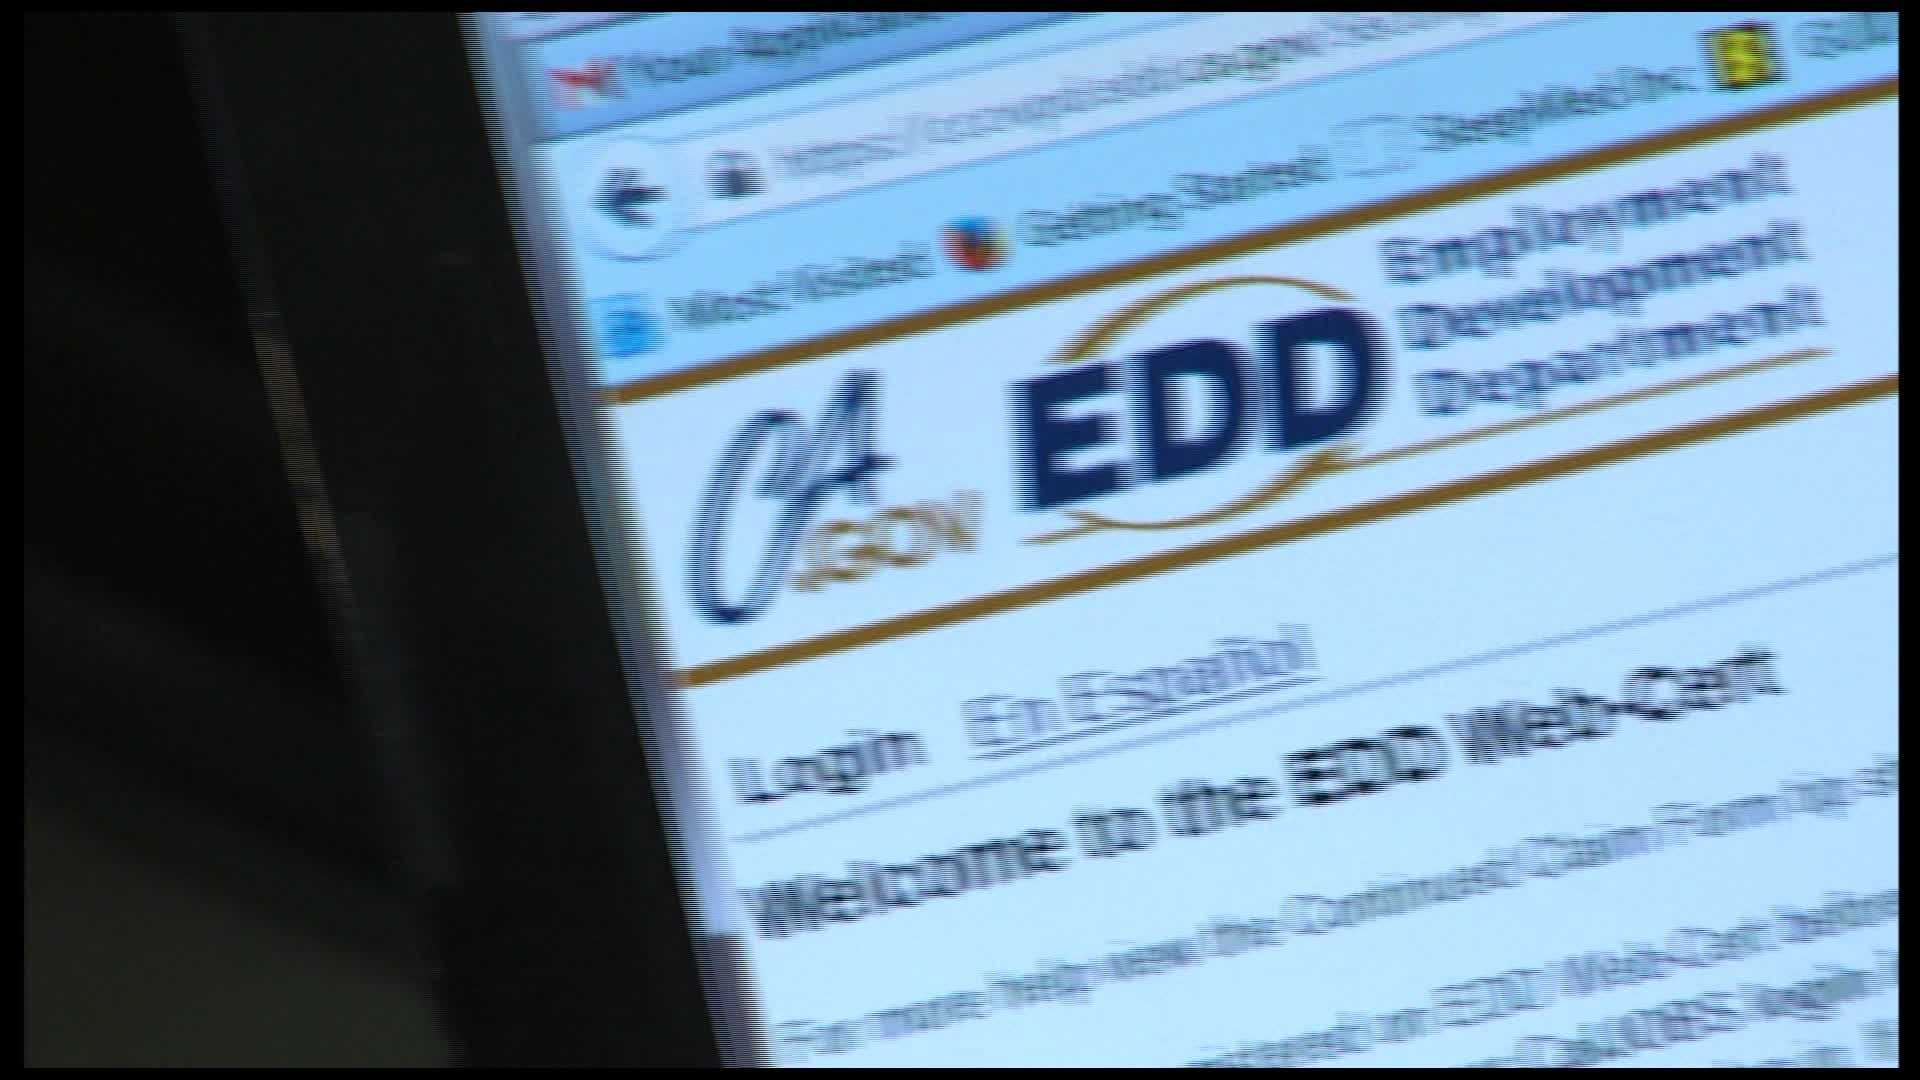 EDD computer glitch causes panic for thousands of families